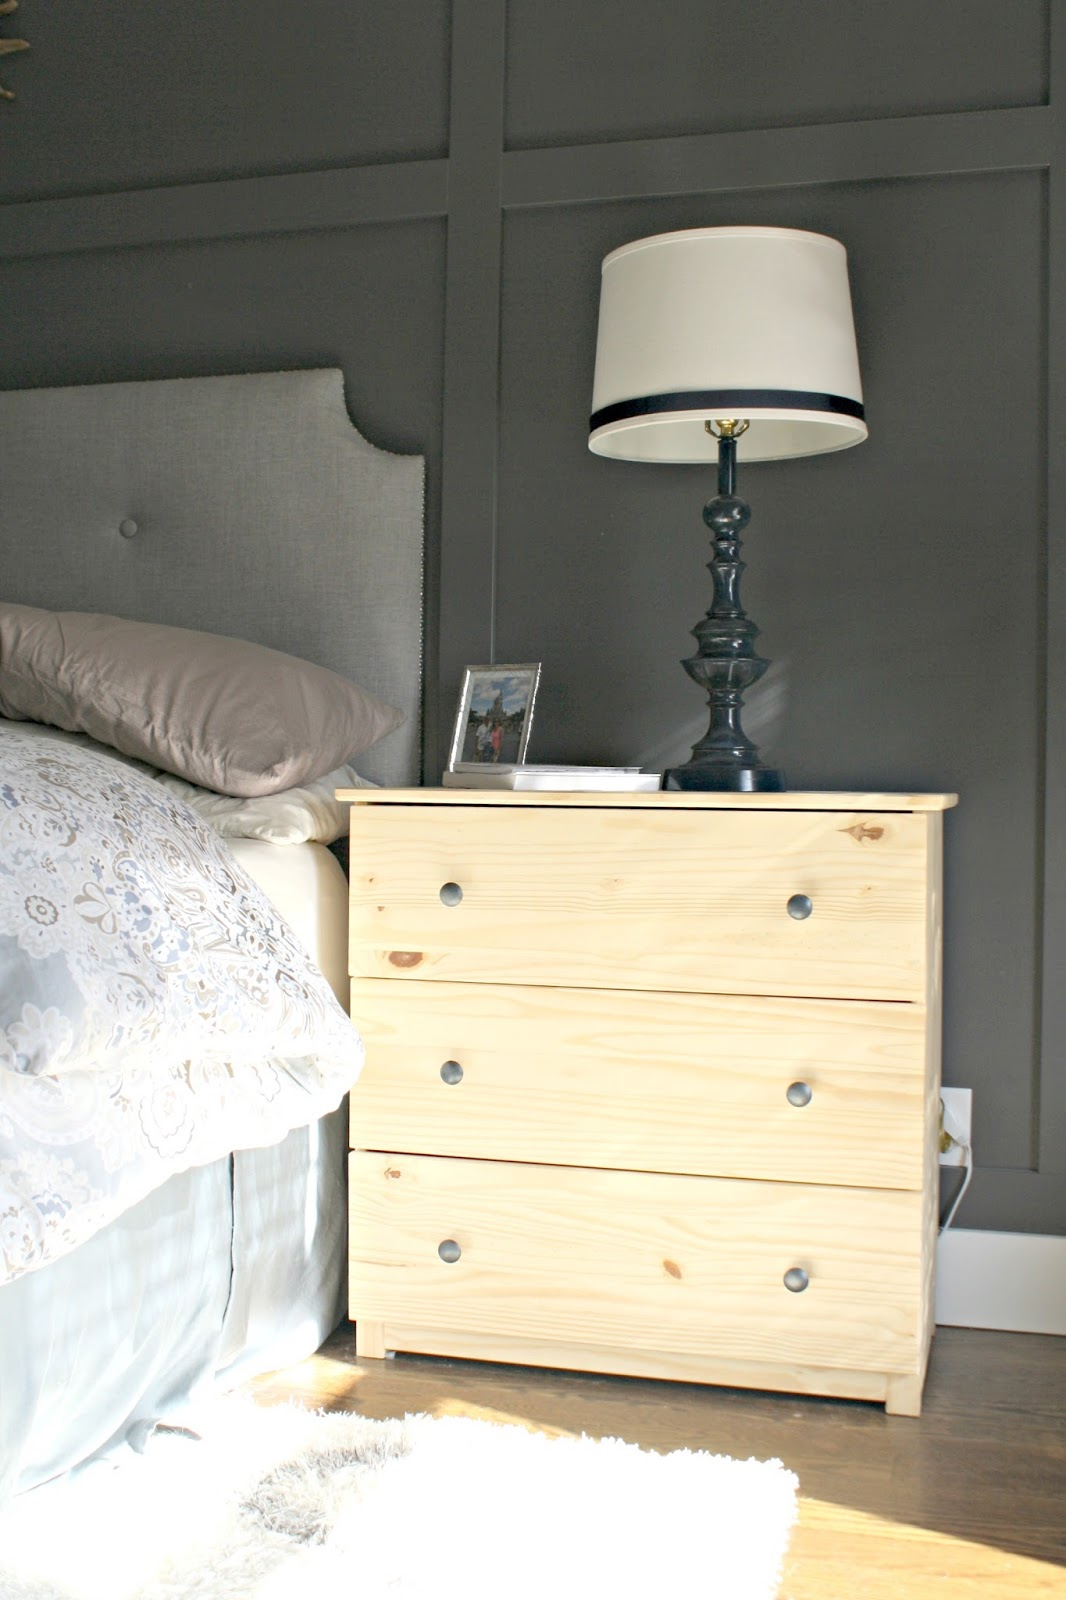 Finally A Beautiful Nightstand Makeover From Thrifty Decor Chick